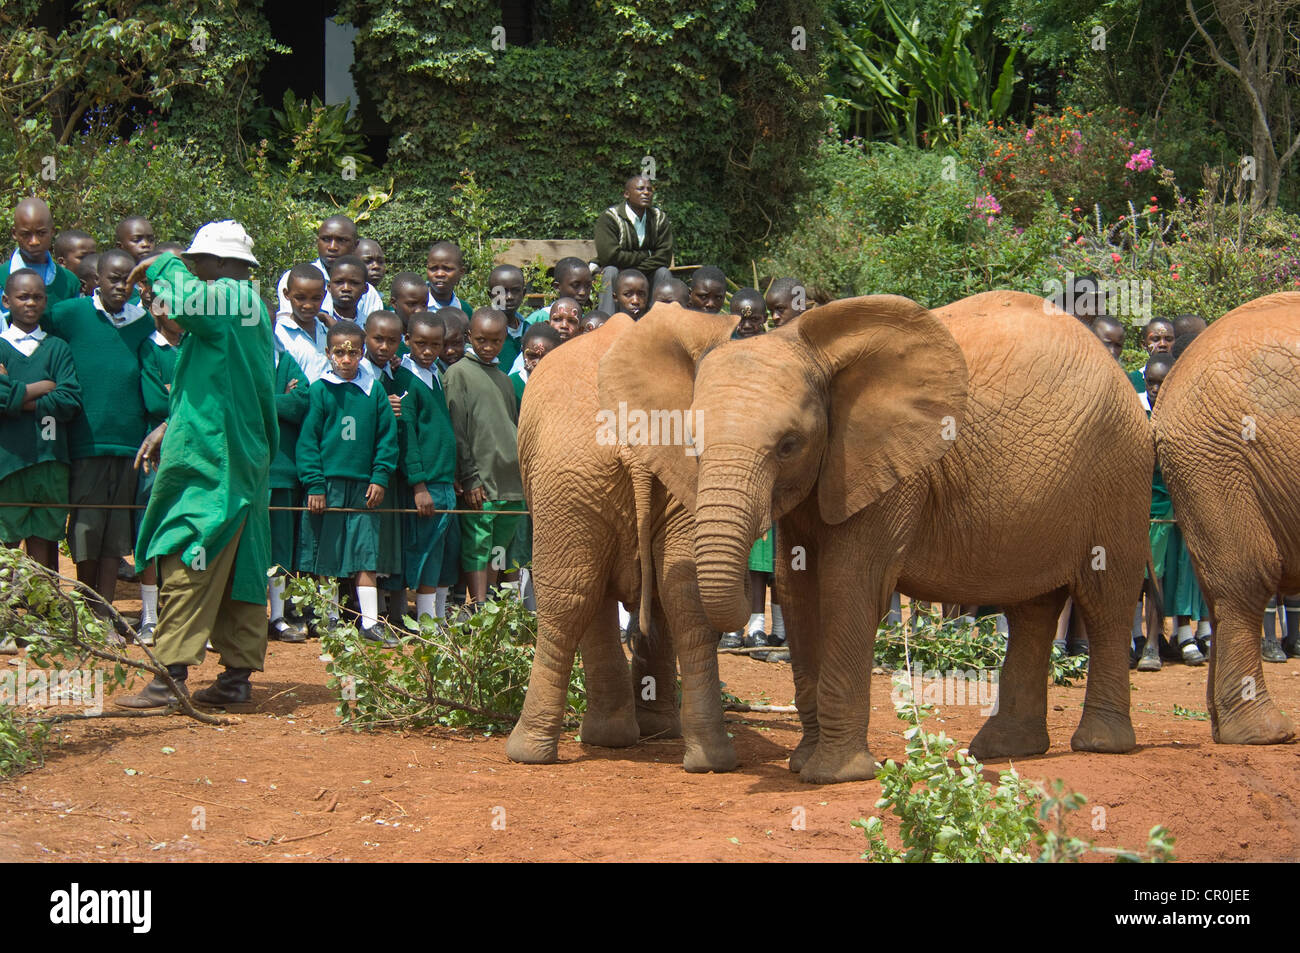 Elephant keeper talking to school children-orphaned elephants standing nearby - Stock Image